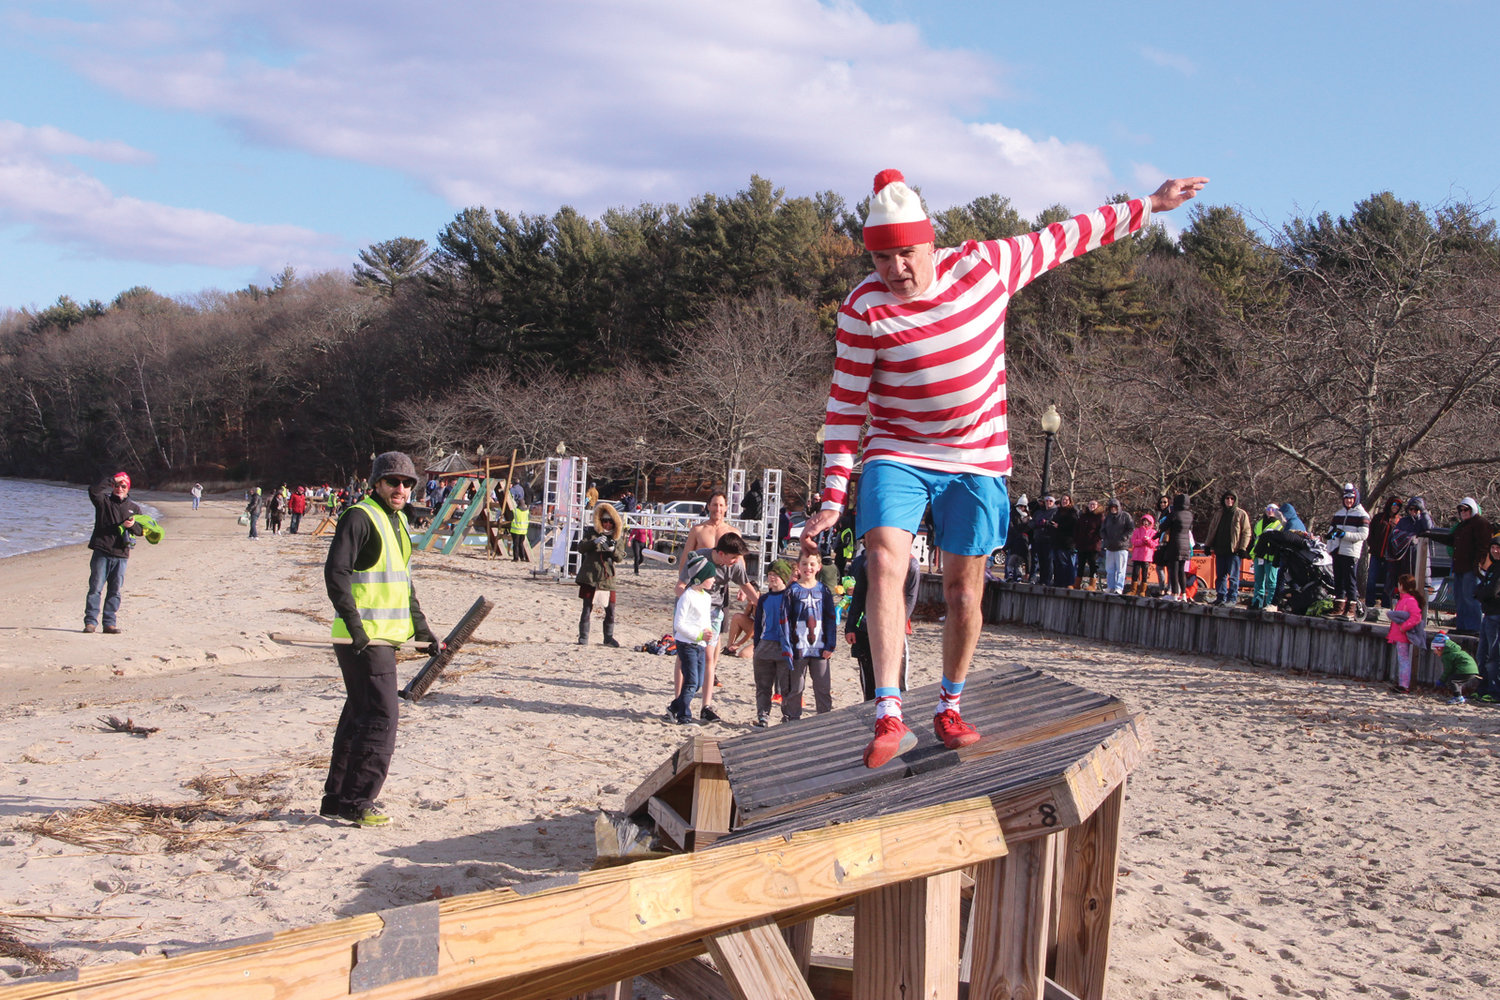 FINAL OBSTACLE: Larry Phillips, 58, from Red Hook, N.Y. runs the final challenge in the obstacle course before jumping into the bay. Phillips said he makes a point of participating in New Year's Day plunges and had this one on his list. He completed the obsta-plunge course in 16:52.LET'S